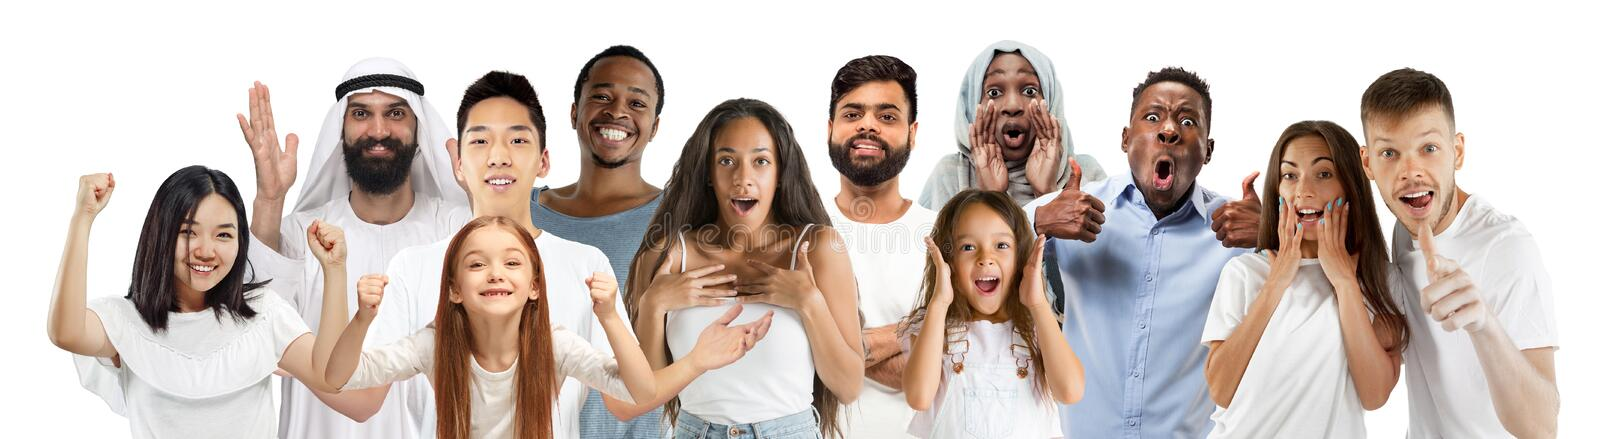 Portrait of young people looks astonished and happy on white background stock photos